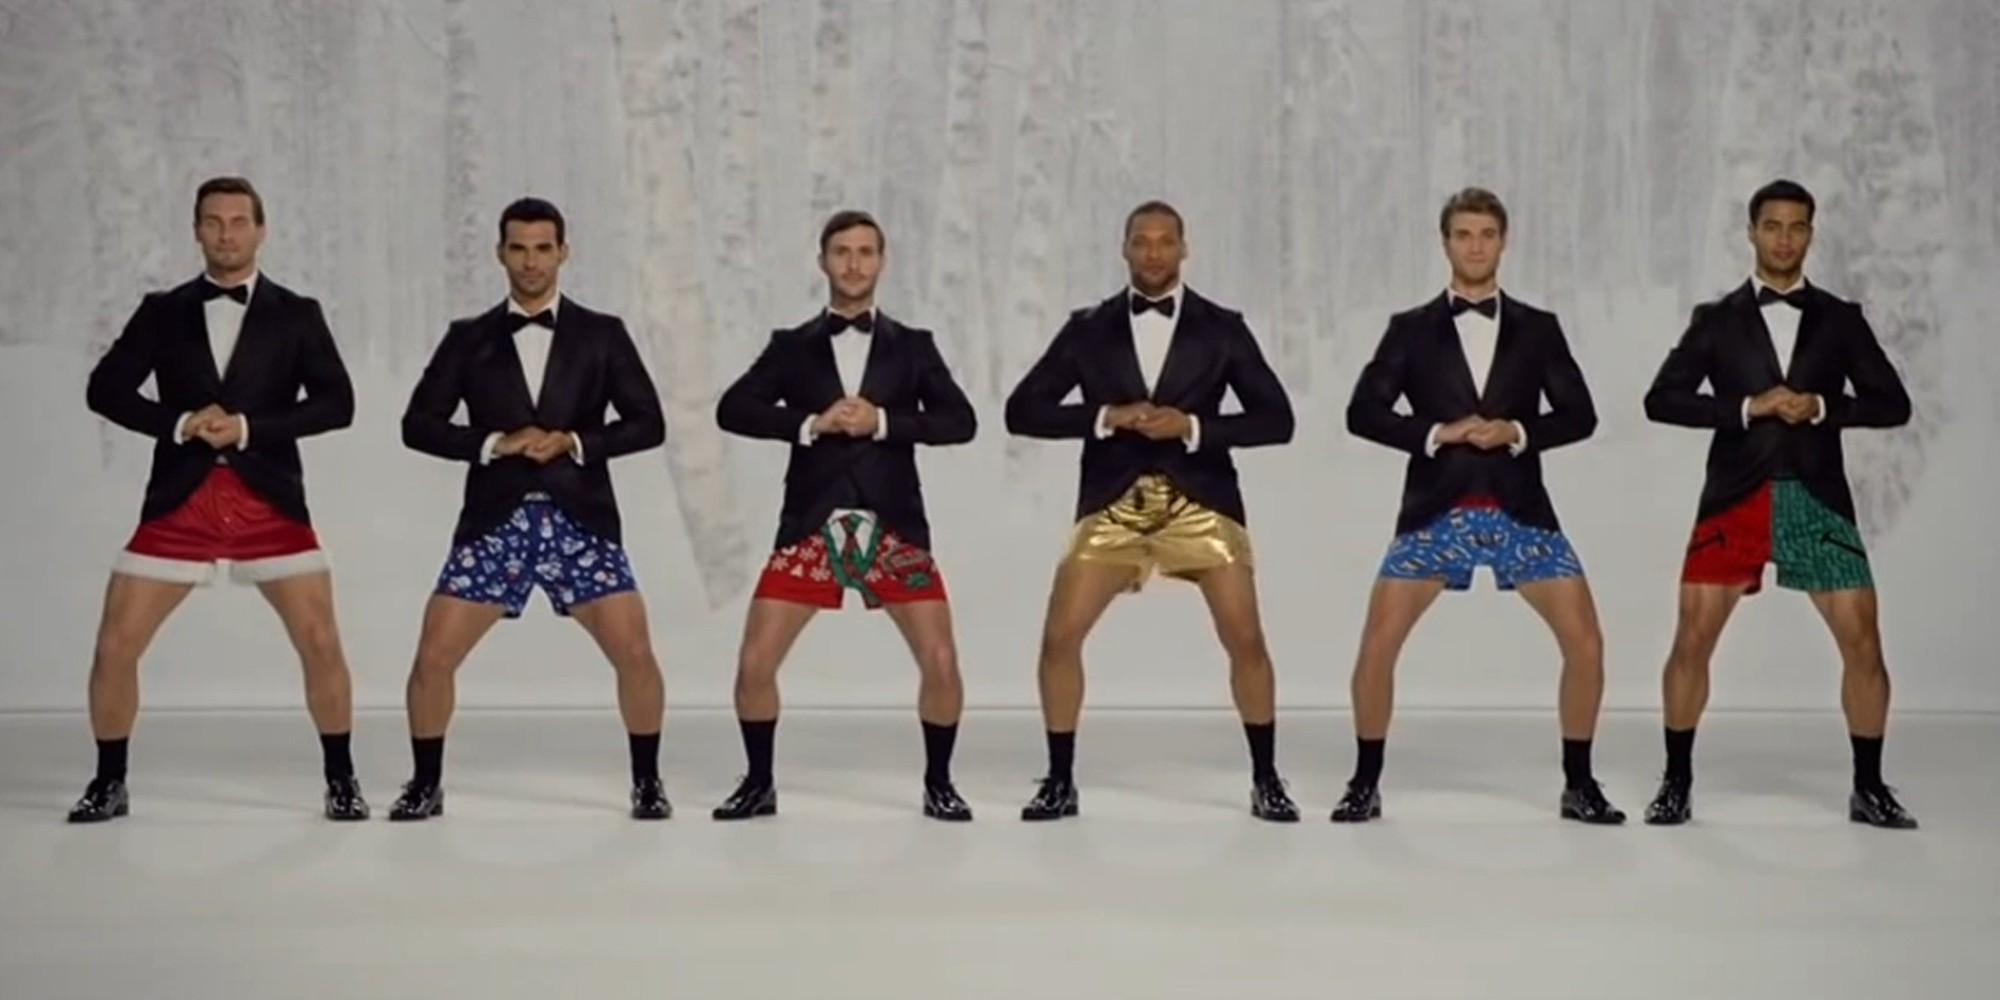 Controversy Erupts Over Kmart's Joe Boxer Christmas Commercial ...